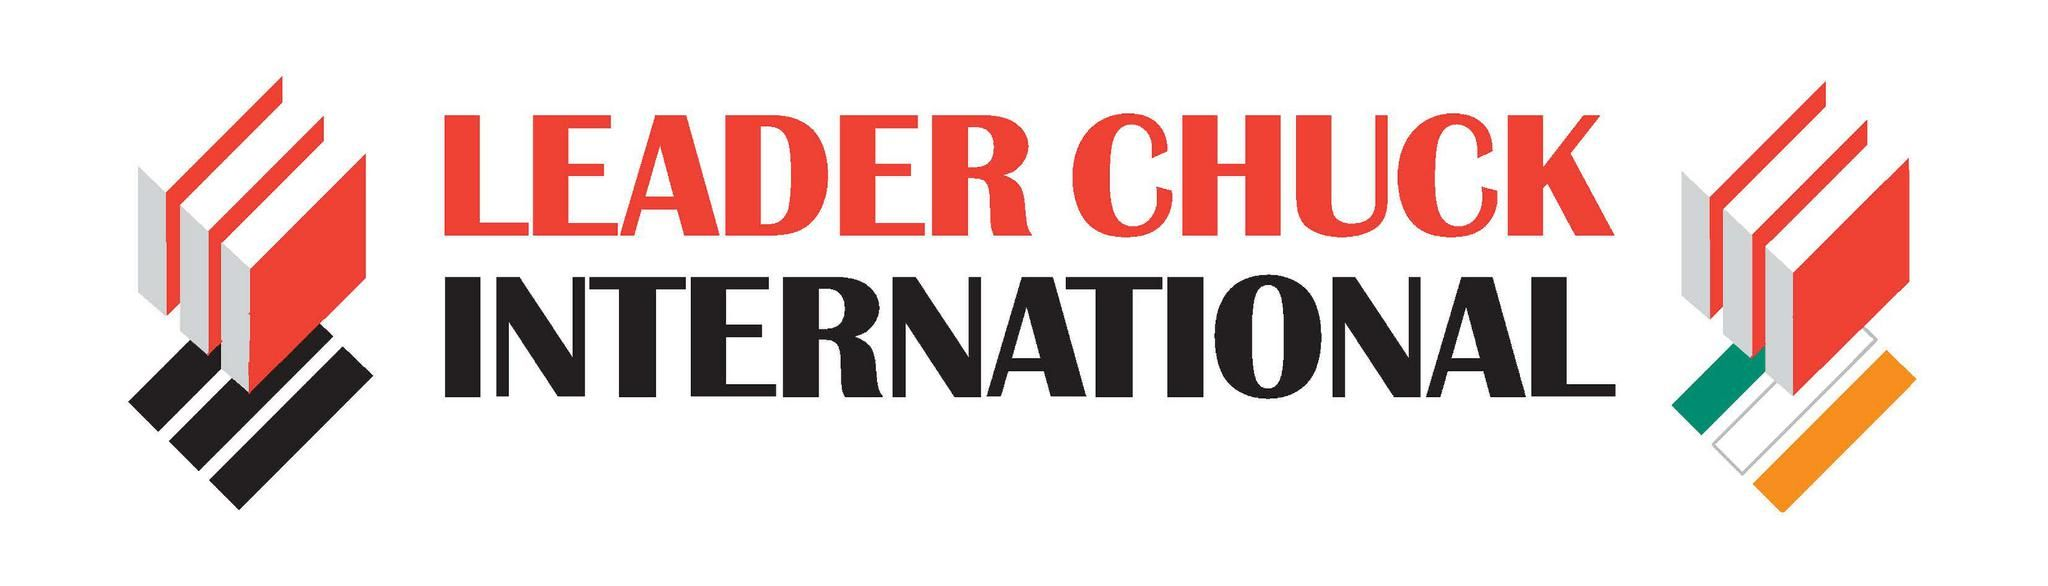 LEADER CHUCK INTERNATIONAL